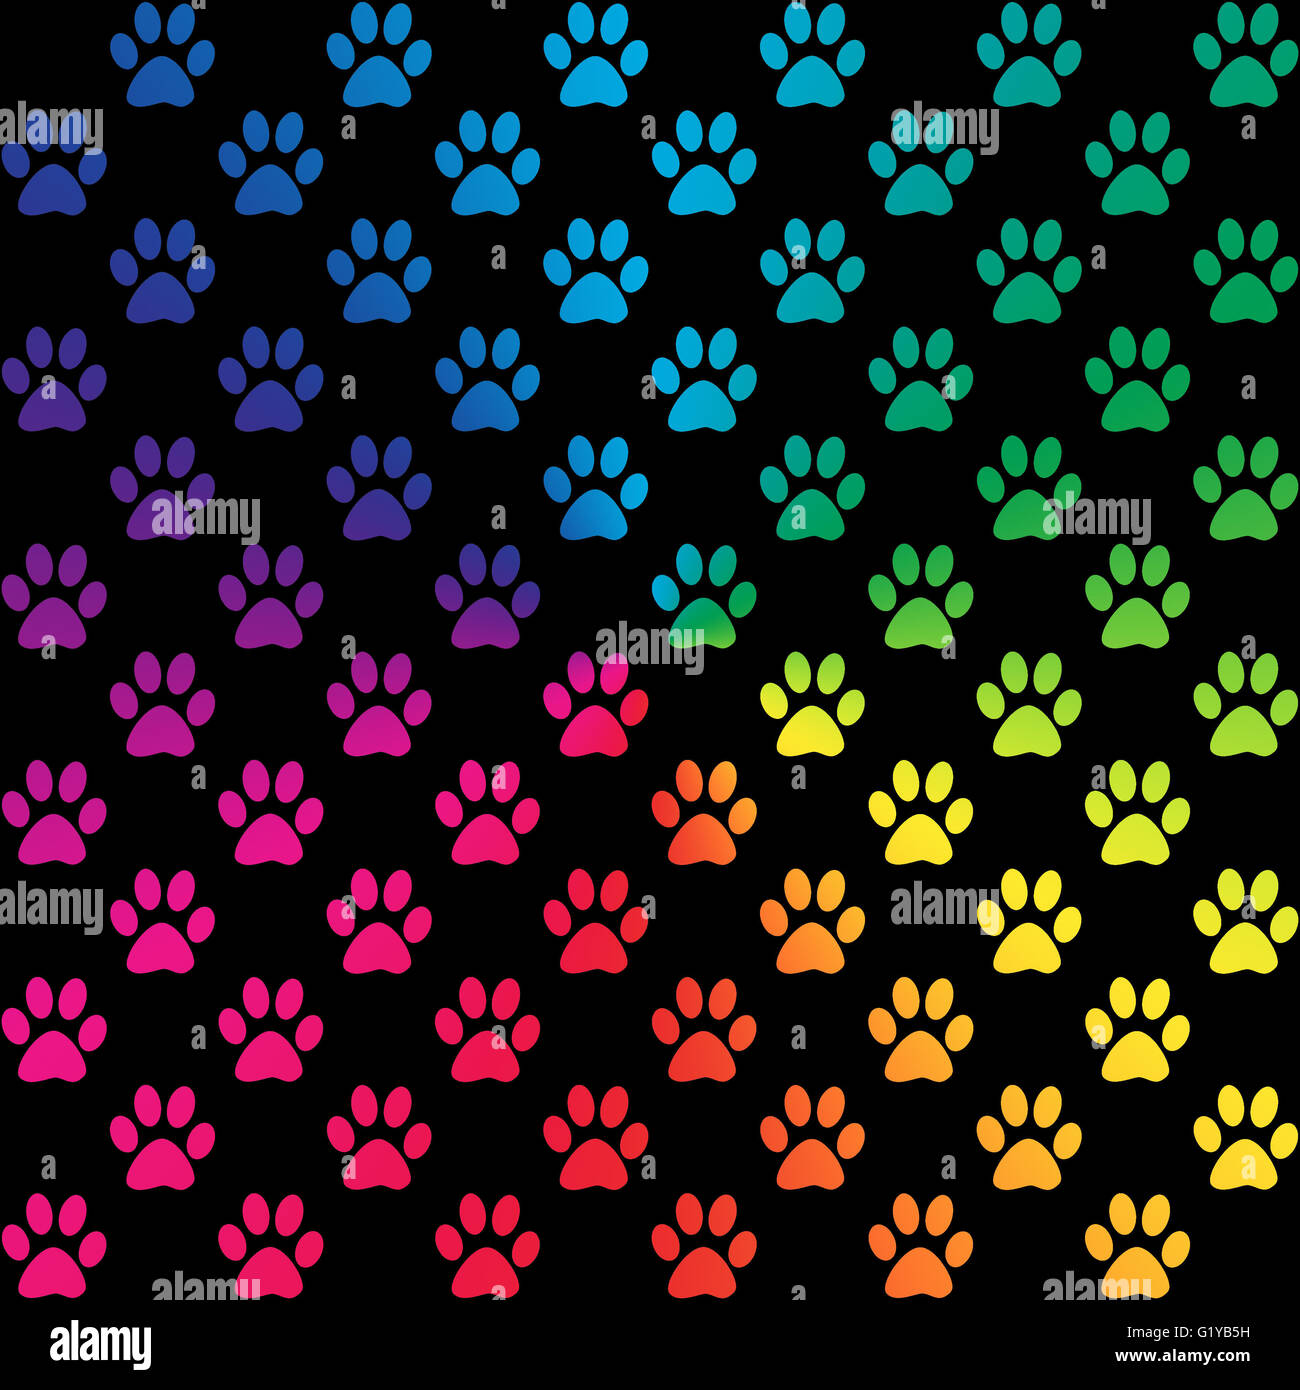 Paw Prints In Gradient Rainbow Colors, On Black Background